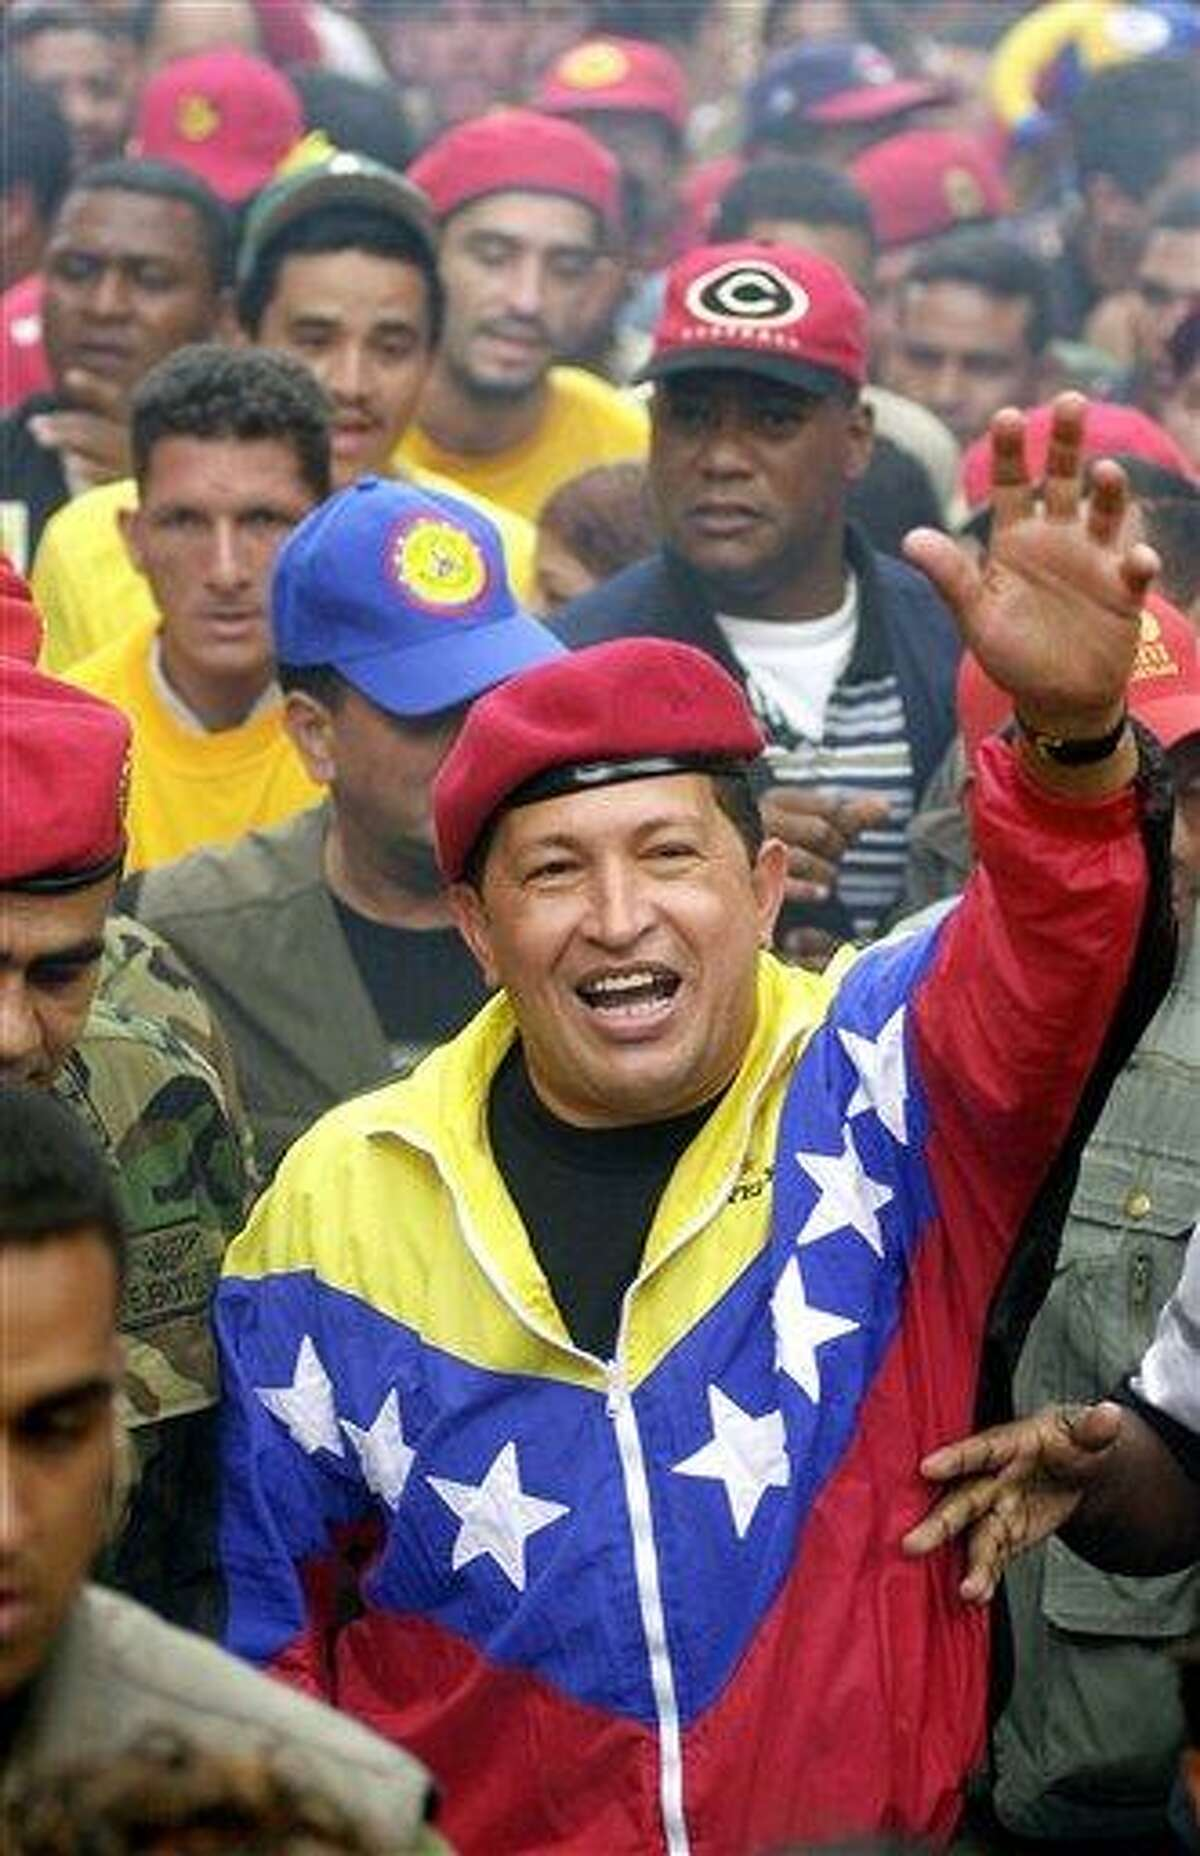 FILE - In this Jan. 23, 2002 file photo, Venezuela's President Hugo Chavez waves to supporters during a government march commemorating the anniversary of Venezuelan democracy in Caracas, Venezuela. Venezuela's Vice President Nicolas Maduro announced on Tuesday, March 5, 2013 that Chavez has died. Chavez, 58, was first diagnosed with cancer in June 2011. (AP Photo/Fernando Llano, File)